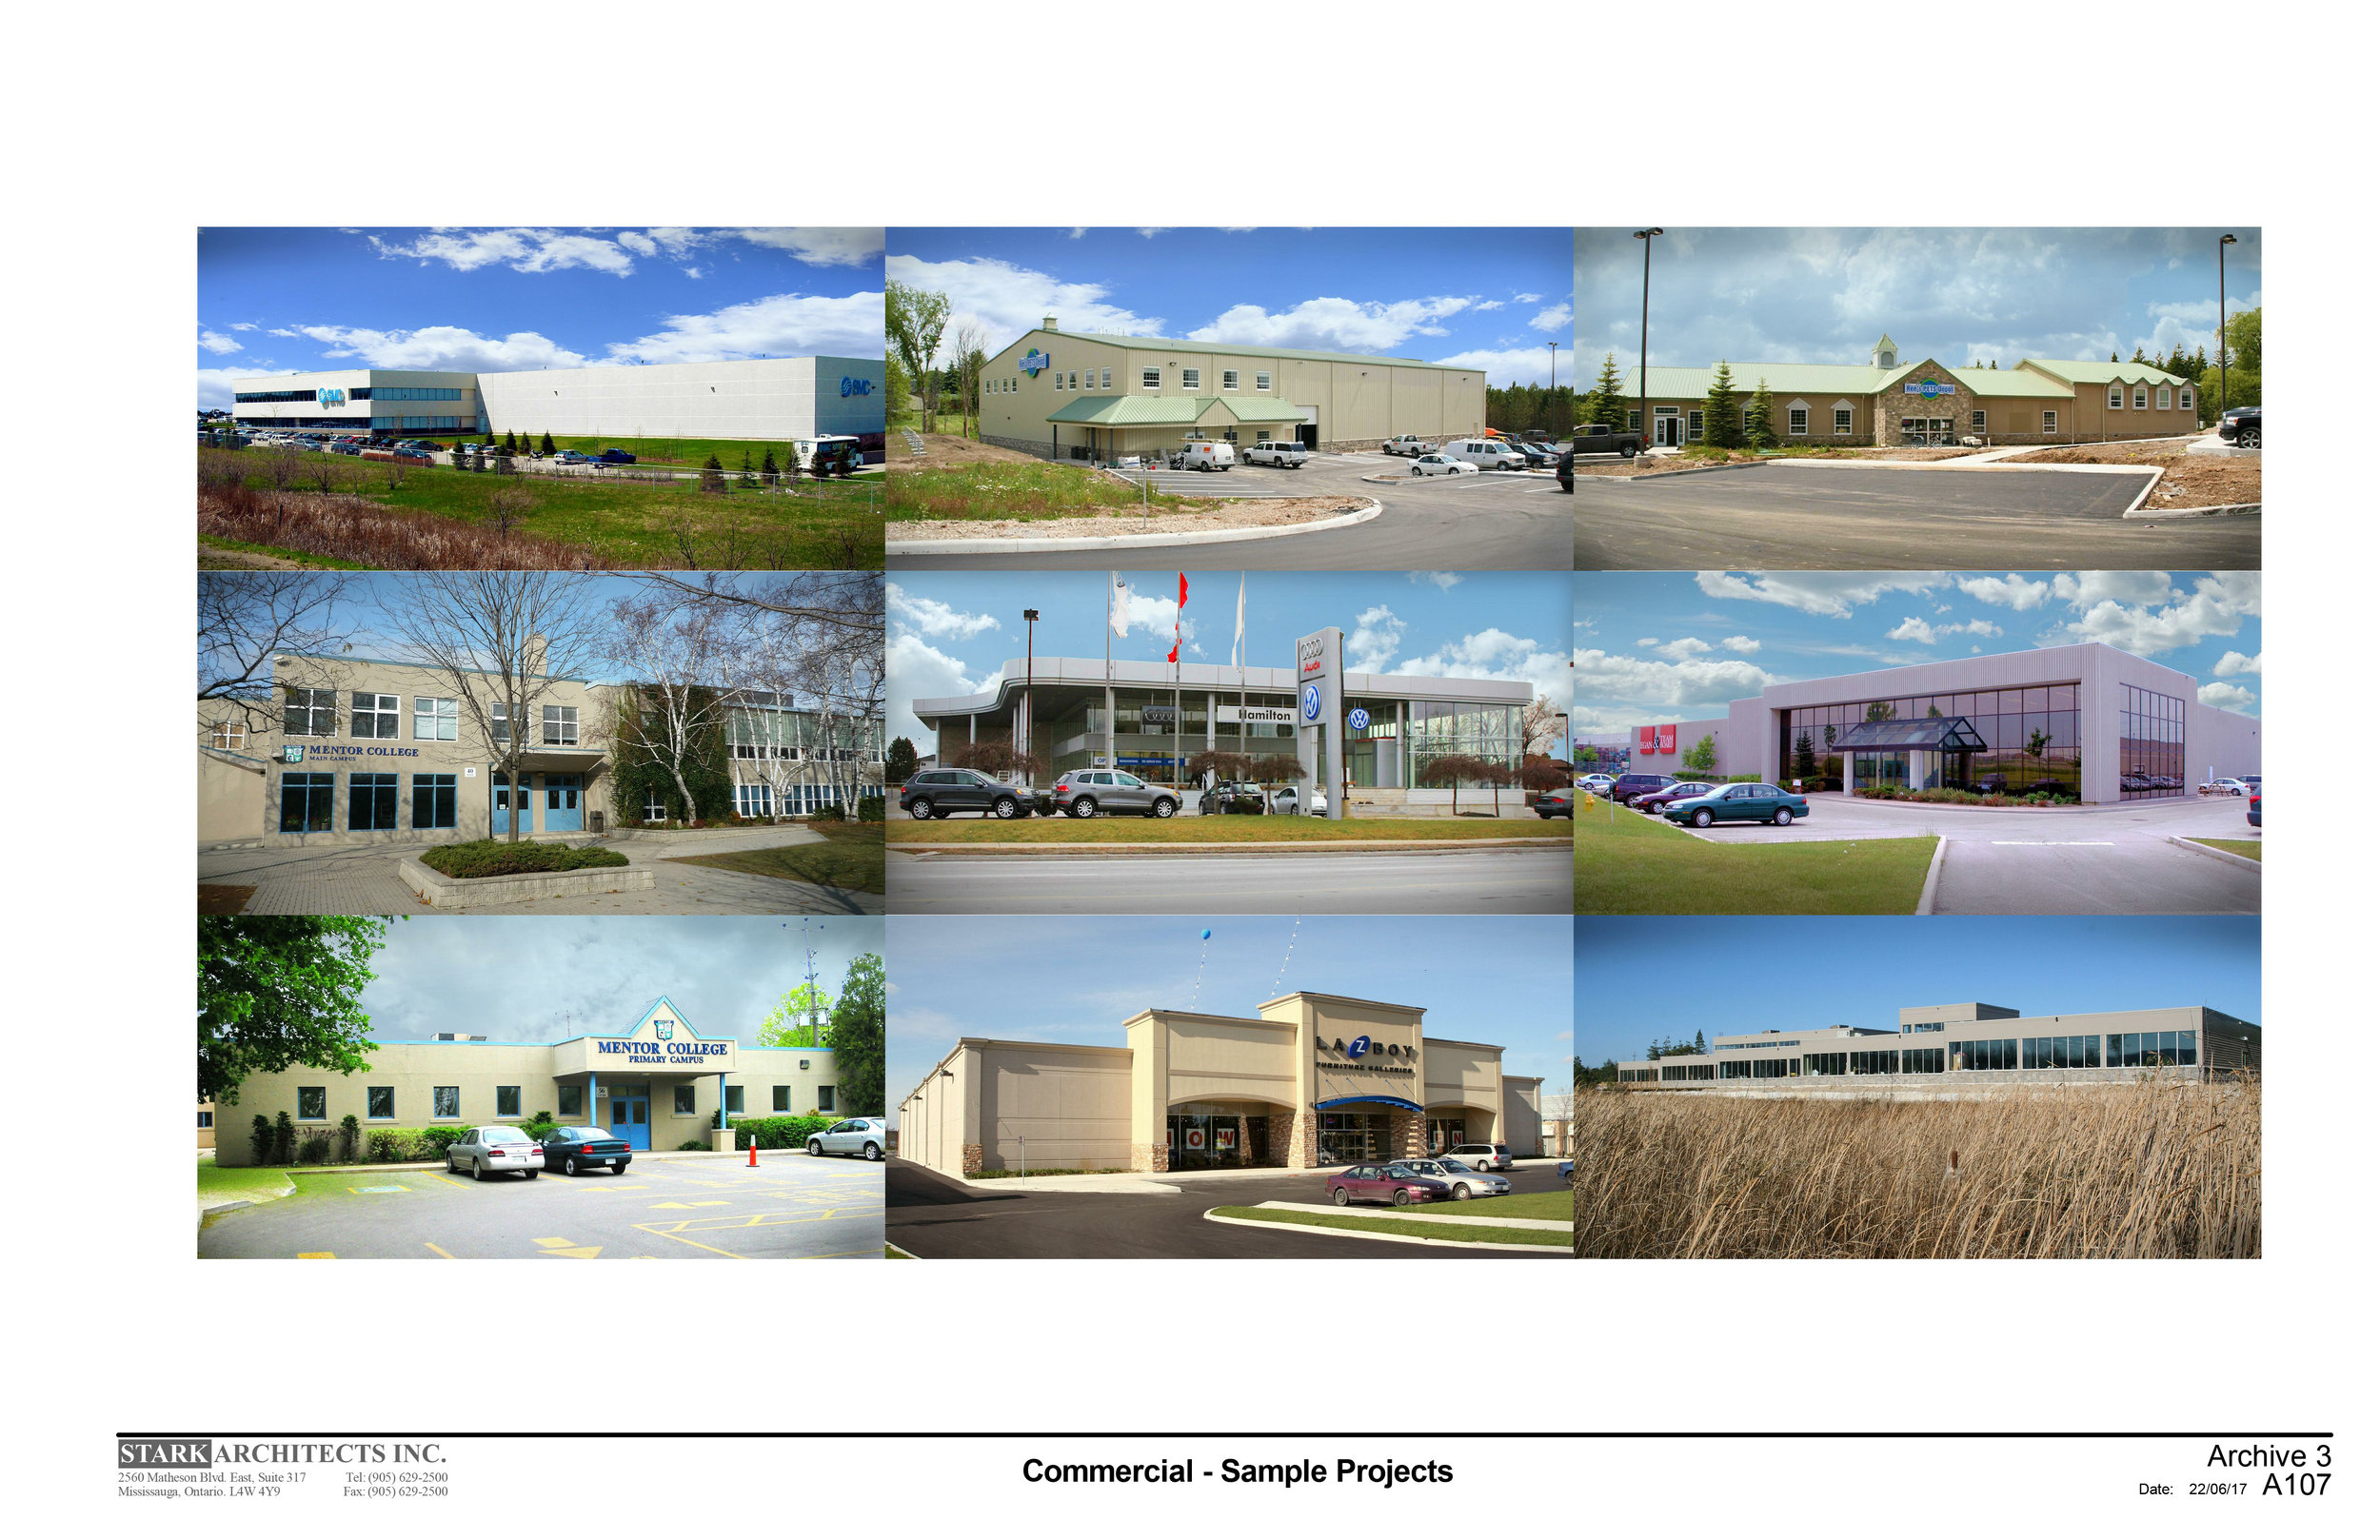 STARK ARCHITECTS INC - SAMPLE PROJECTS - COMMERCIAL - 22-06-17 - A107.jpg